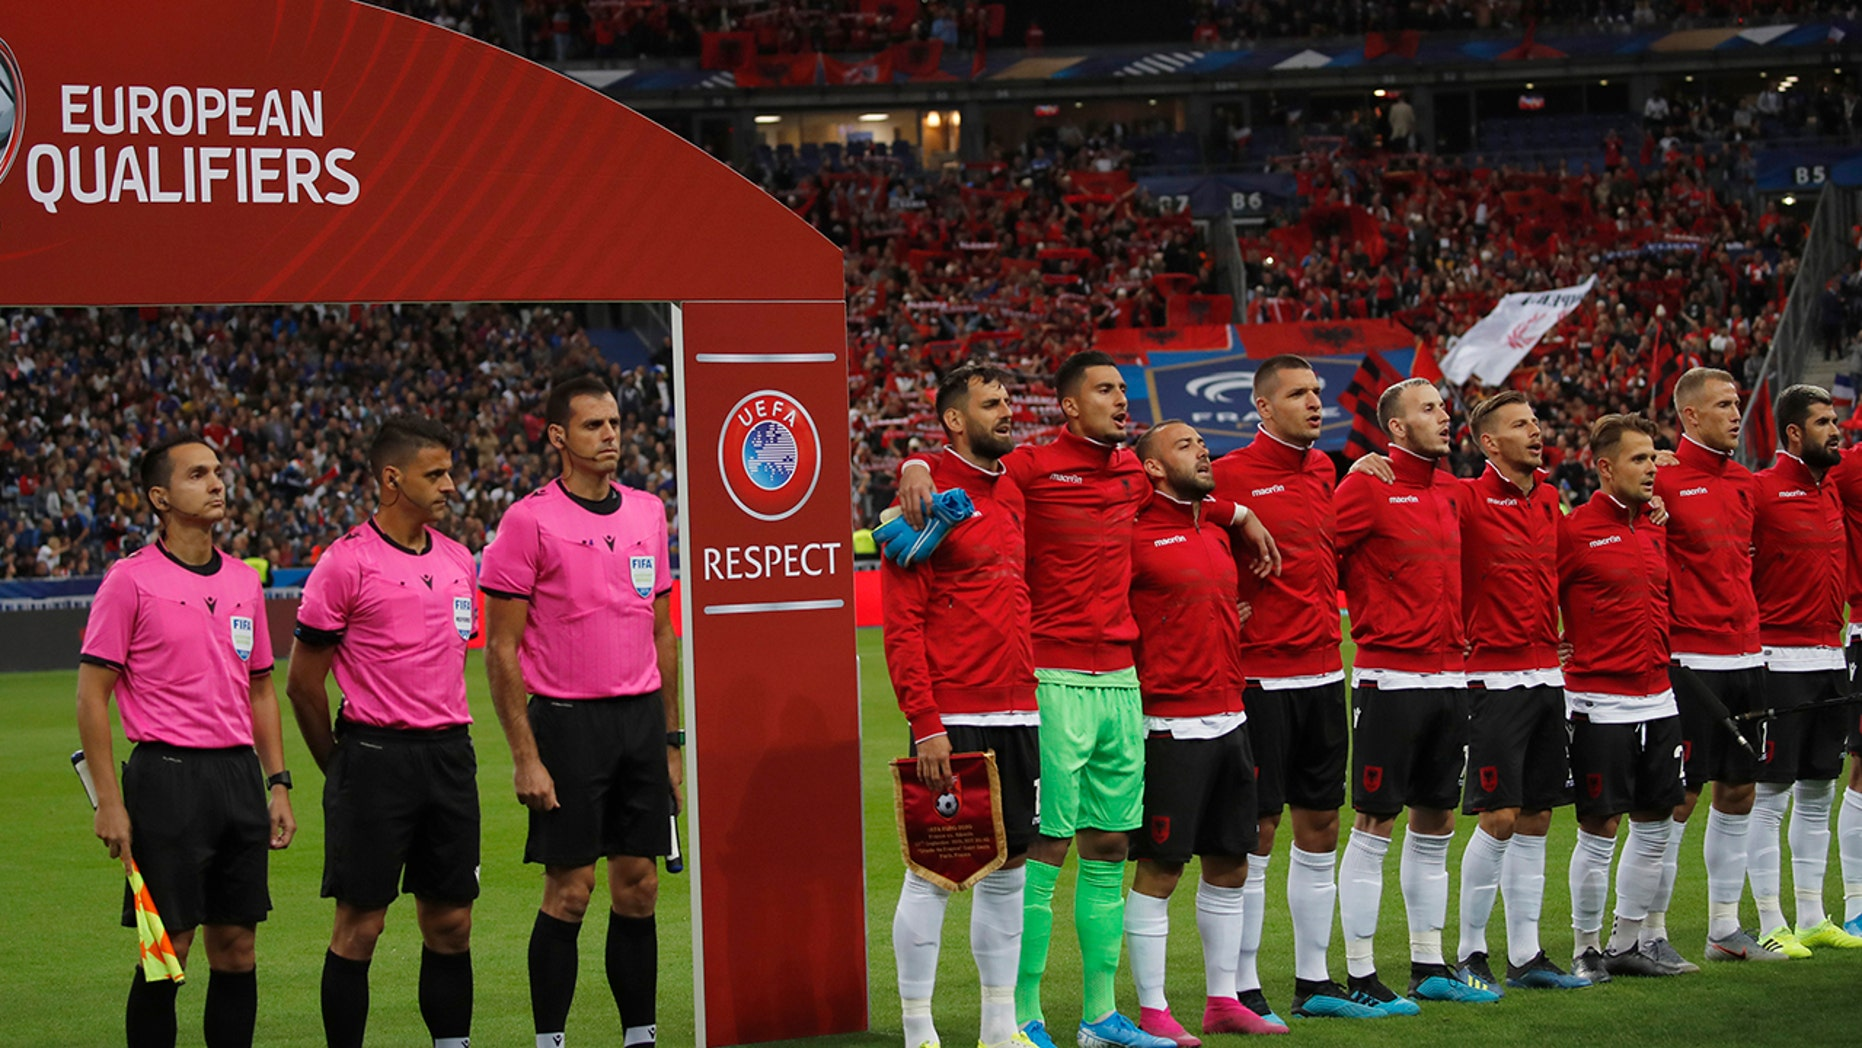 Referees and Albania's soccer team stand during Albania's national anthem, after the wrong one was playing, during of the Euro 2020 group H qualifying soccer match between France and Albania at the Stade de France in Saint Denis, north of Paris, France, Saturday, Sept. 7, 2019. (AP Photo/Christophe Ena)